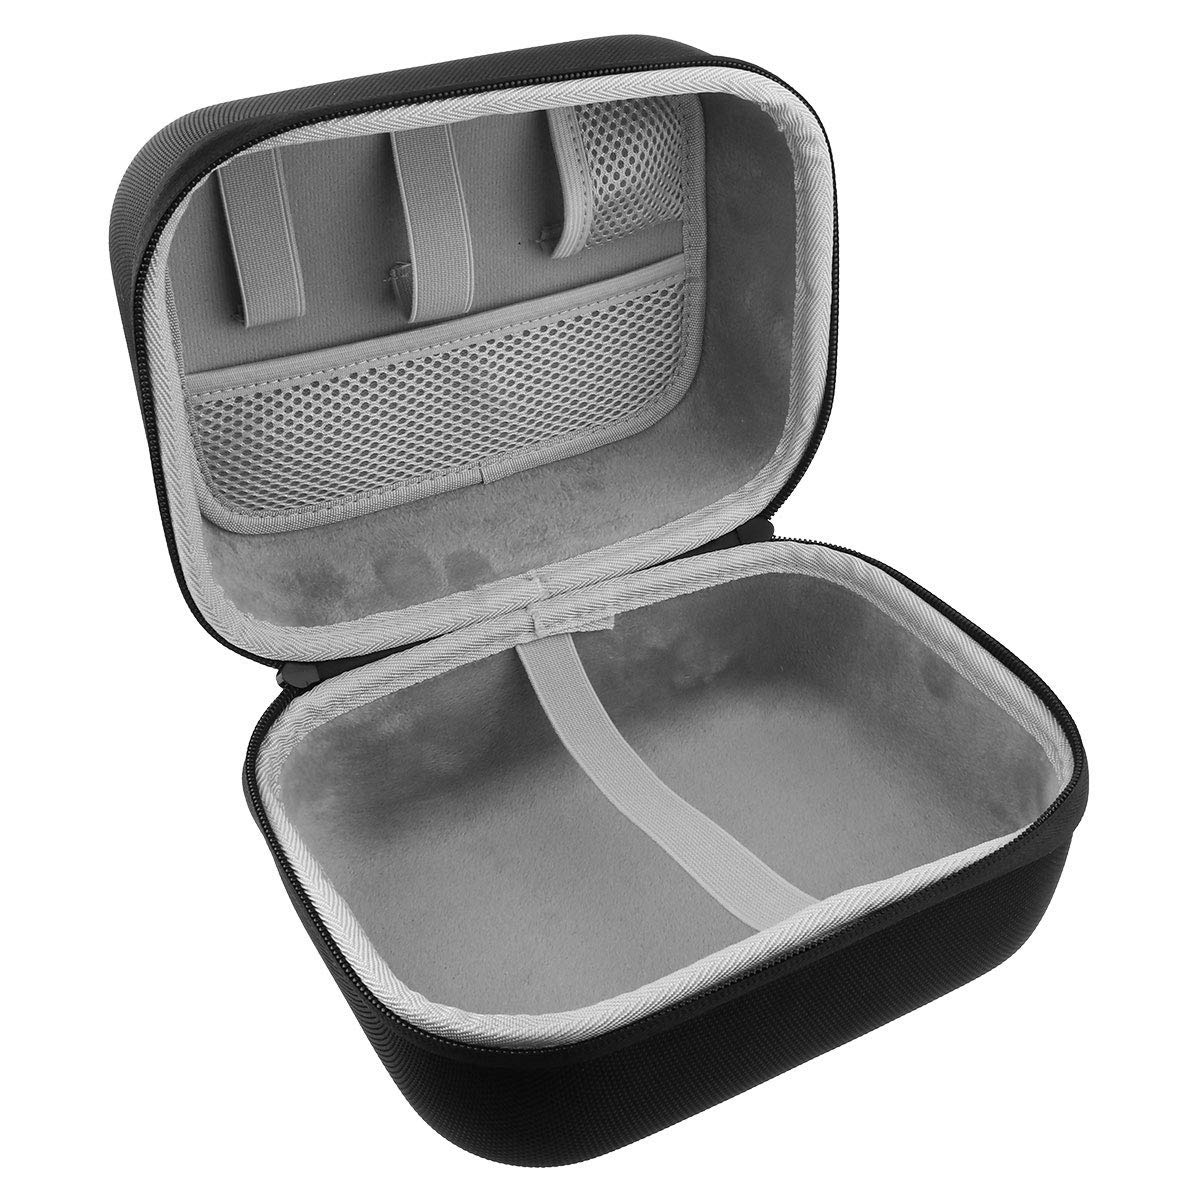 Waterproof Hard EVA Travel Case Carry Bag Protective Storage Box for Oculus Go Virtual Reality Headset and Controllers Accessories